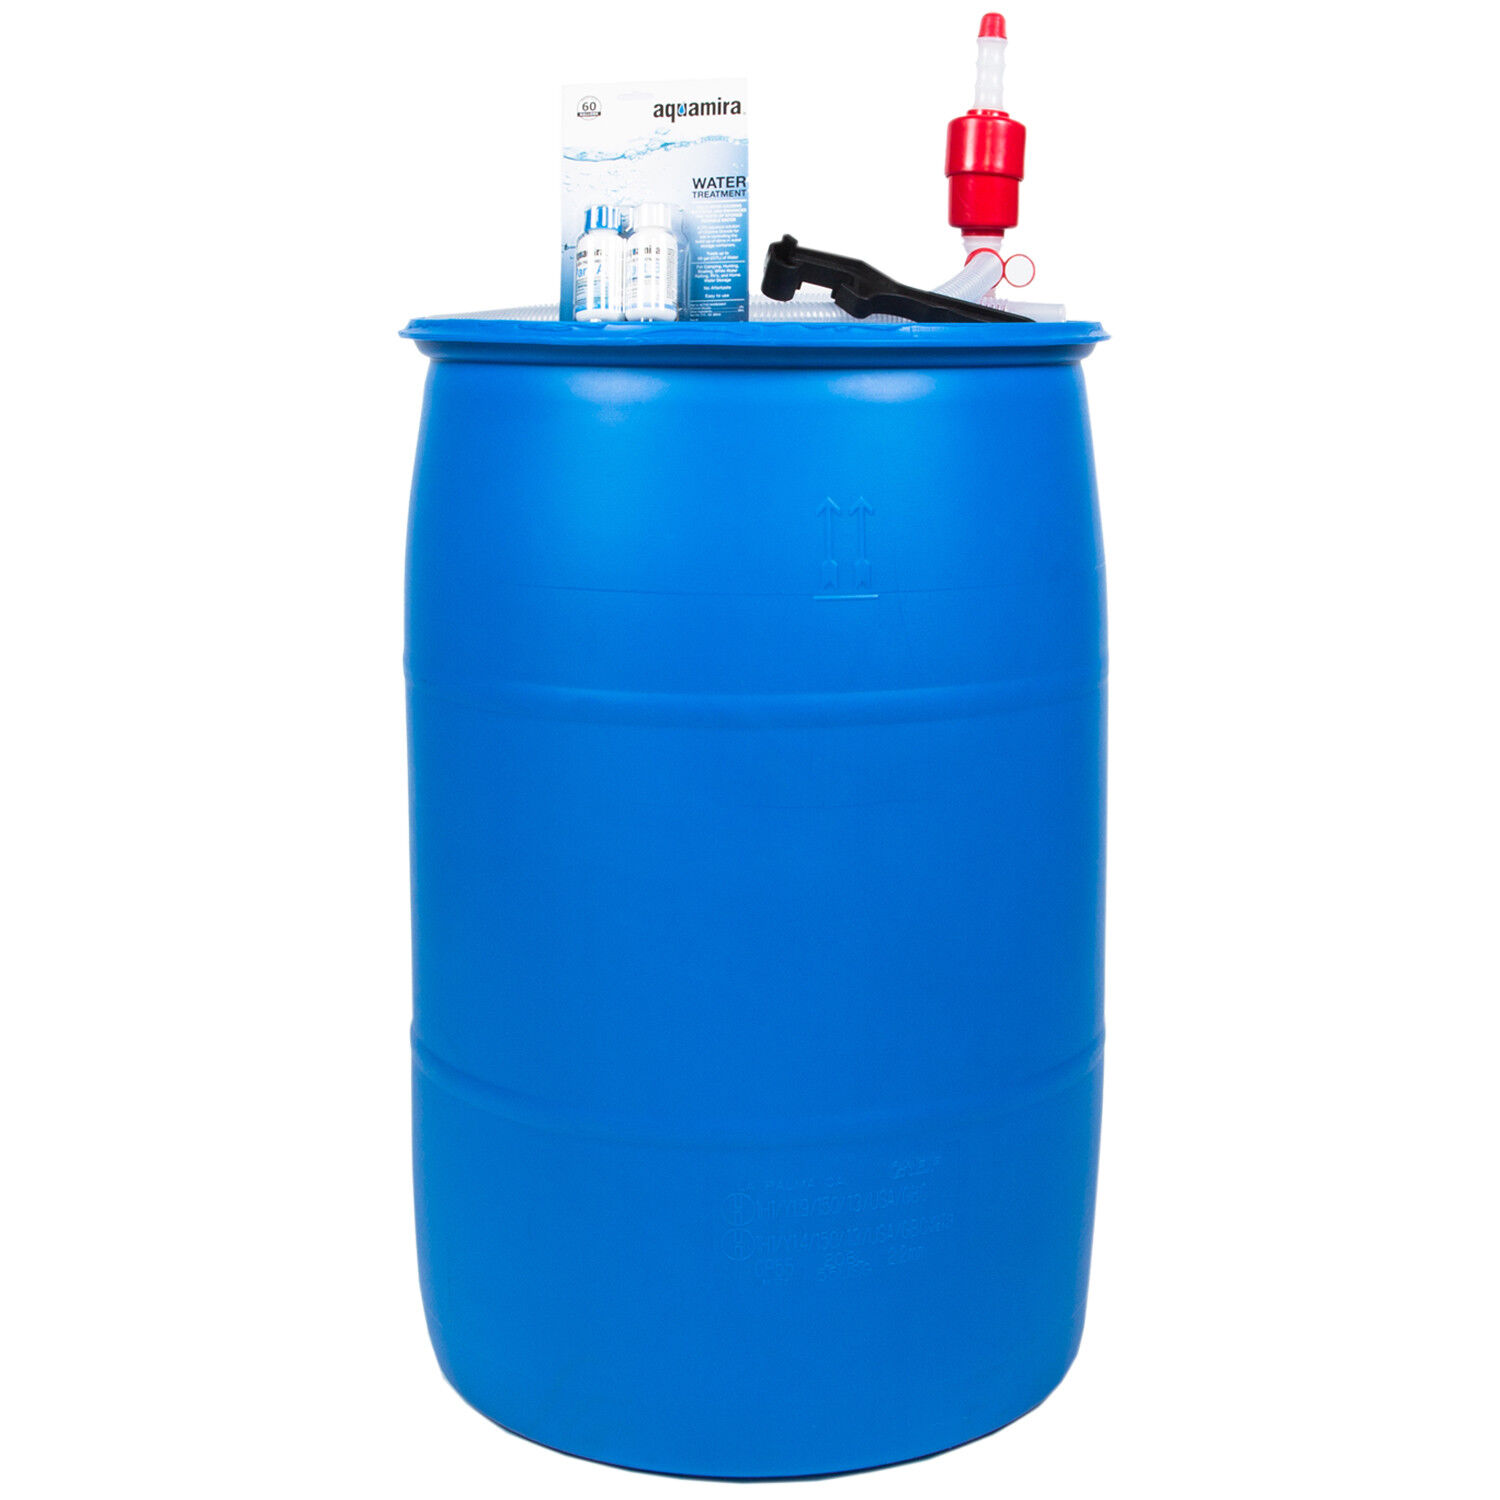 55 Gallon Water Barrel BPA Free Emergency Storage Supply Water Treatment Kit